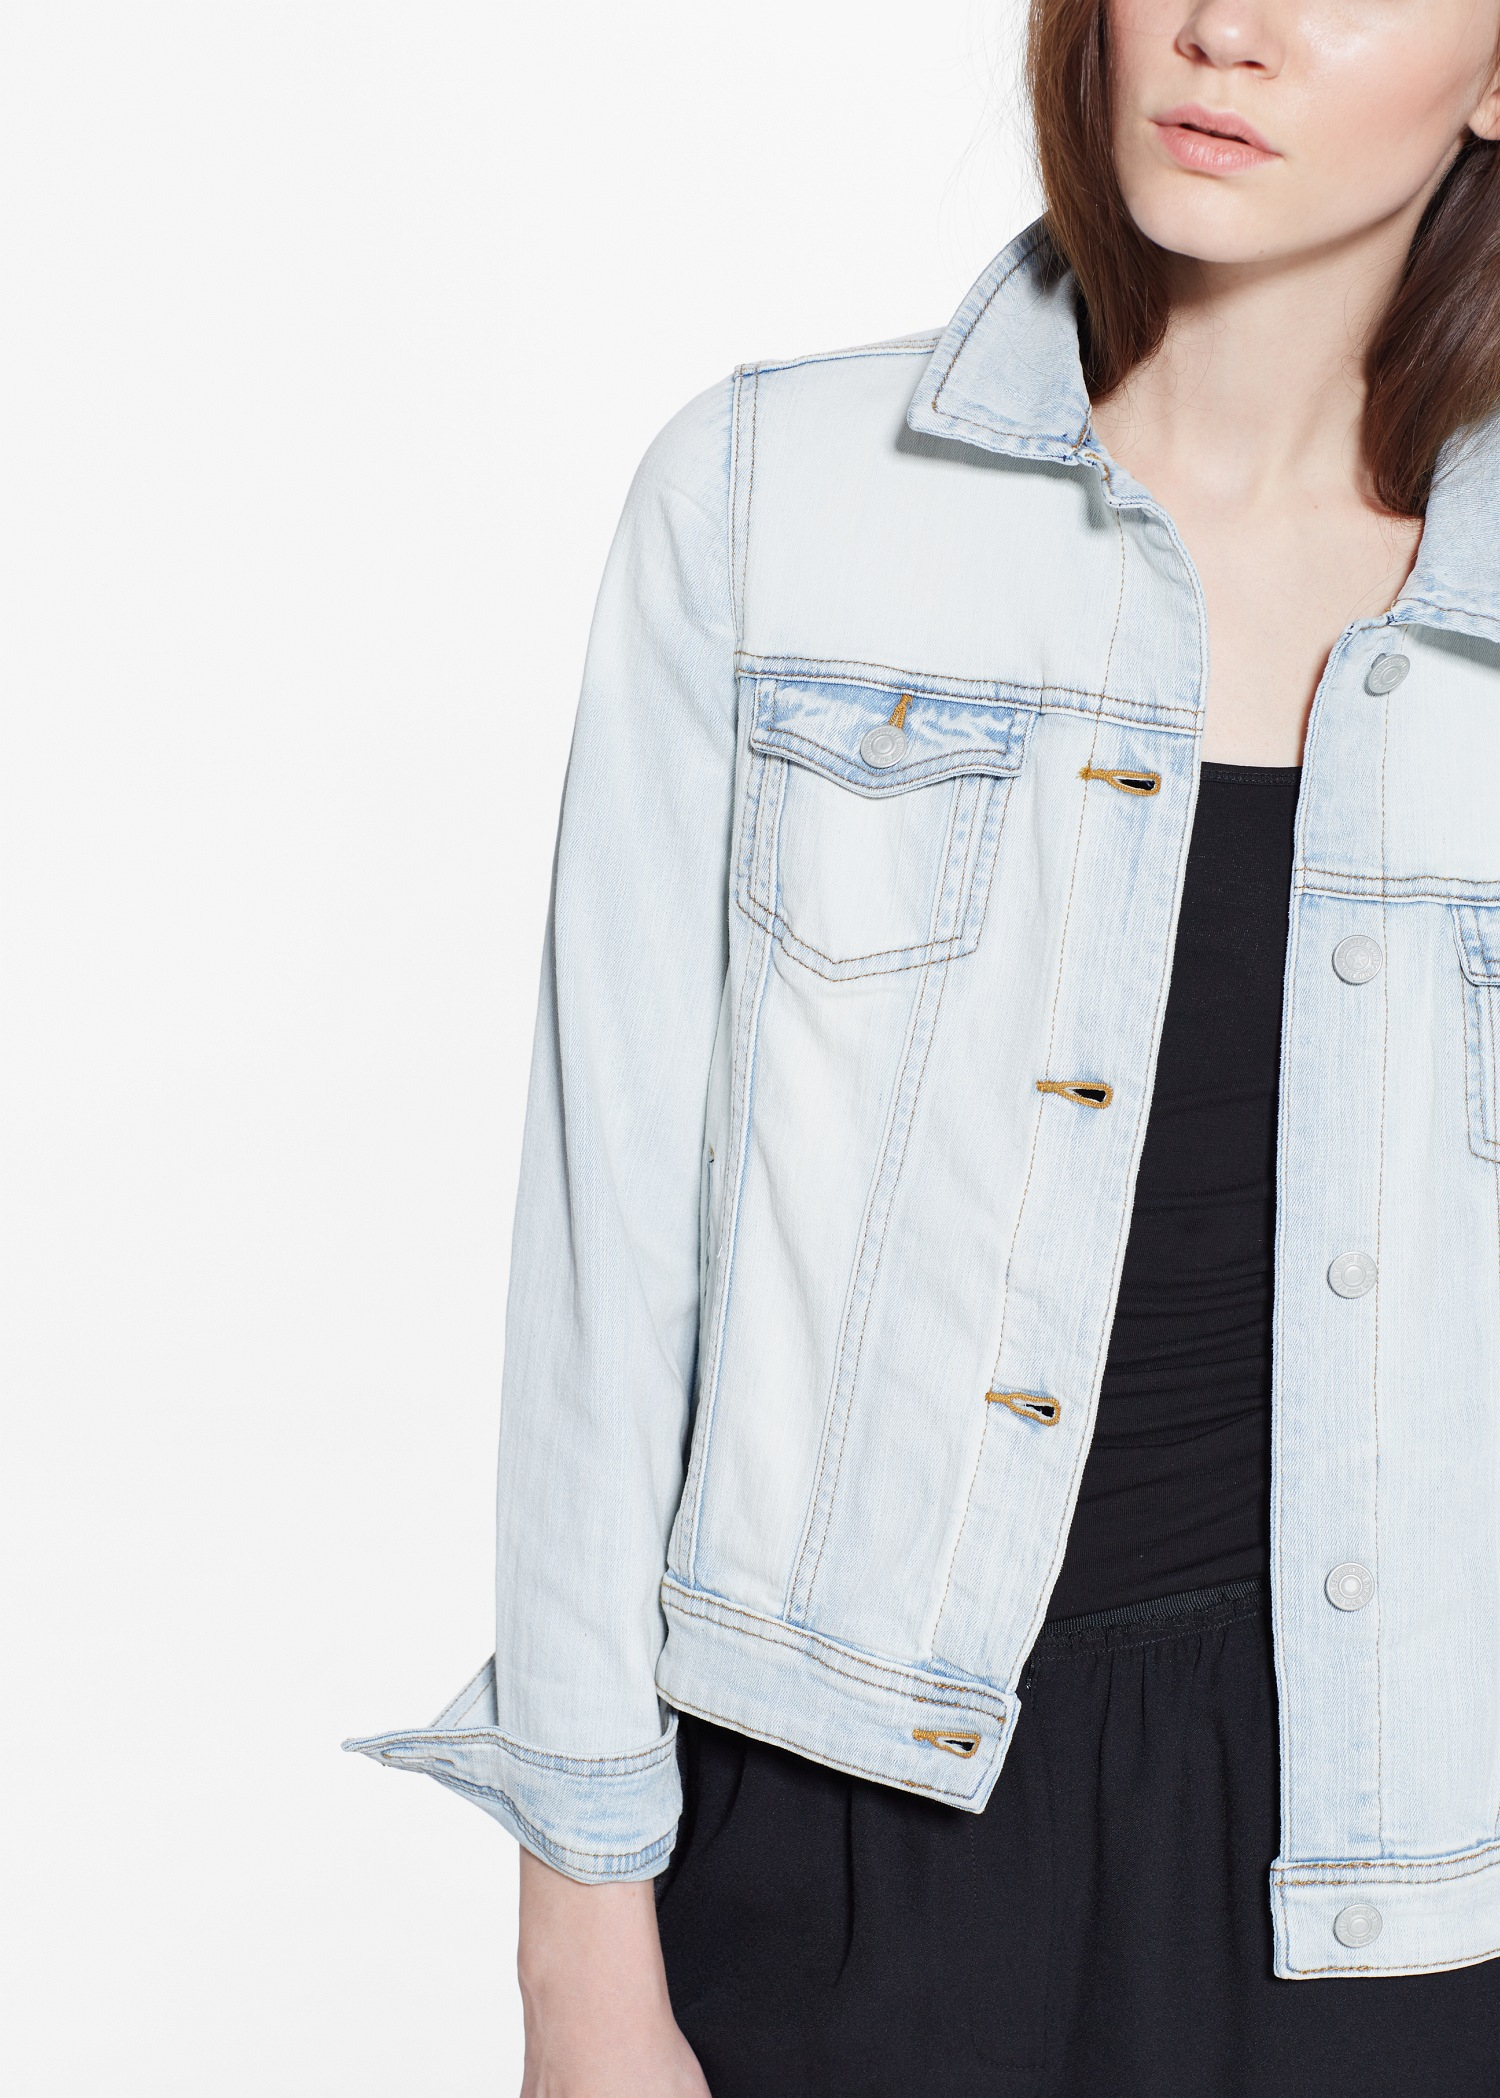 exceptional denim jacket hoodie outfit 9